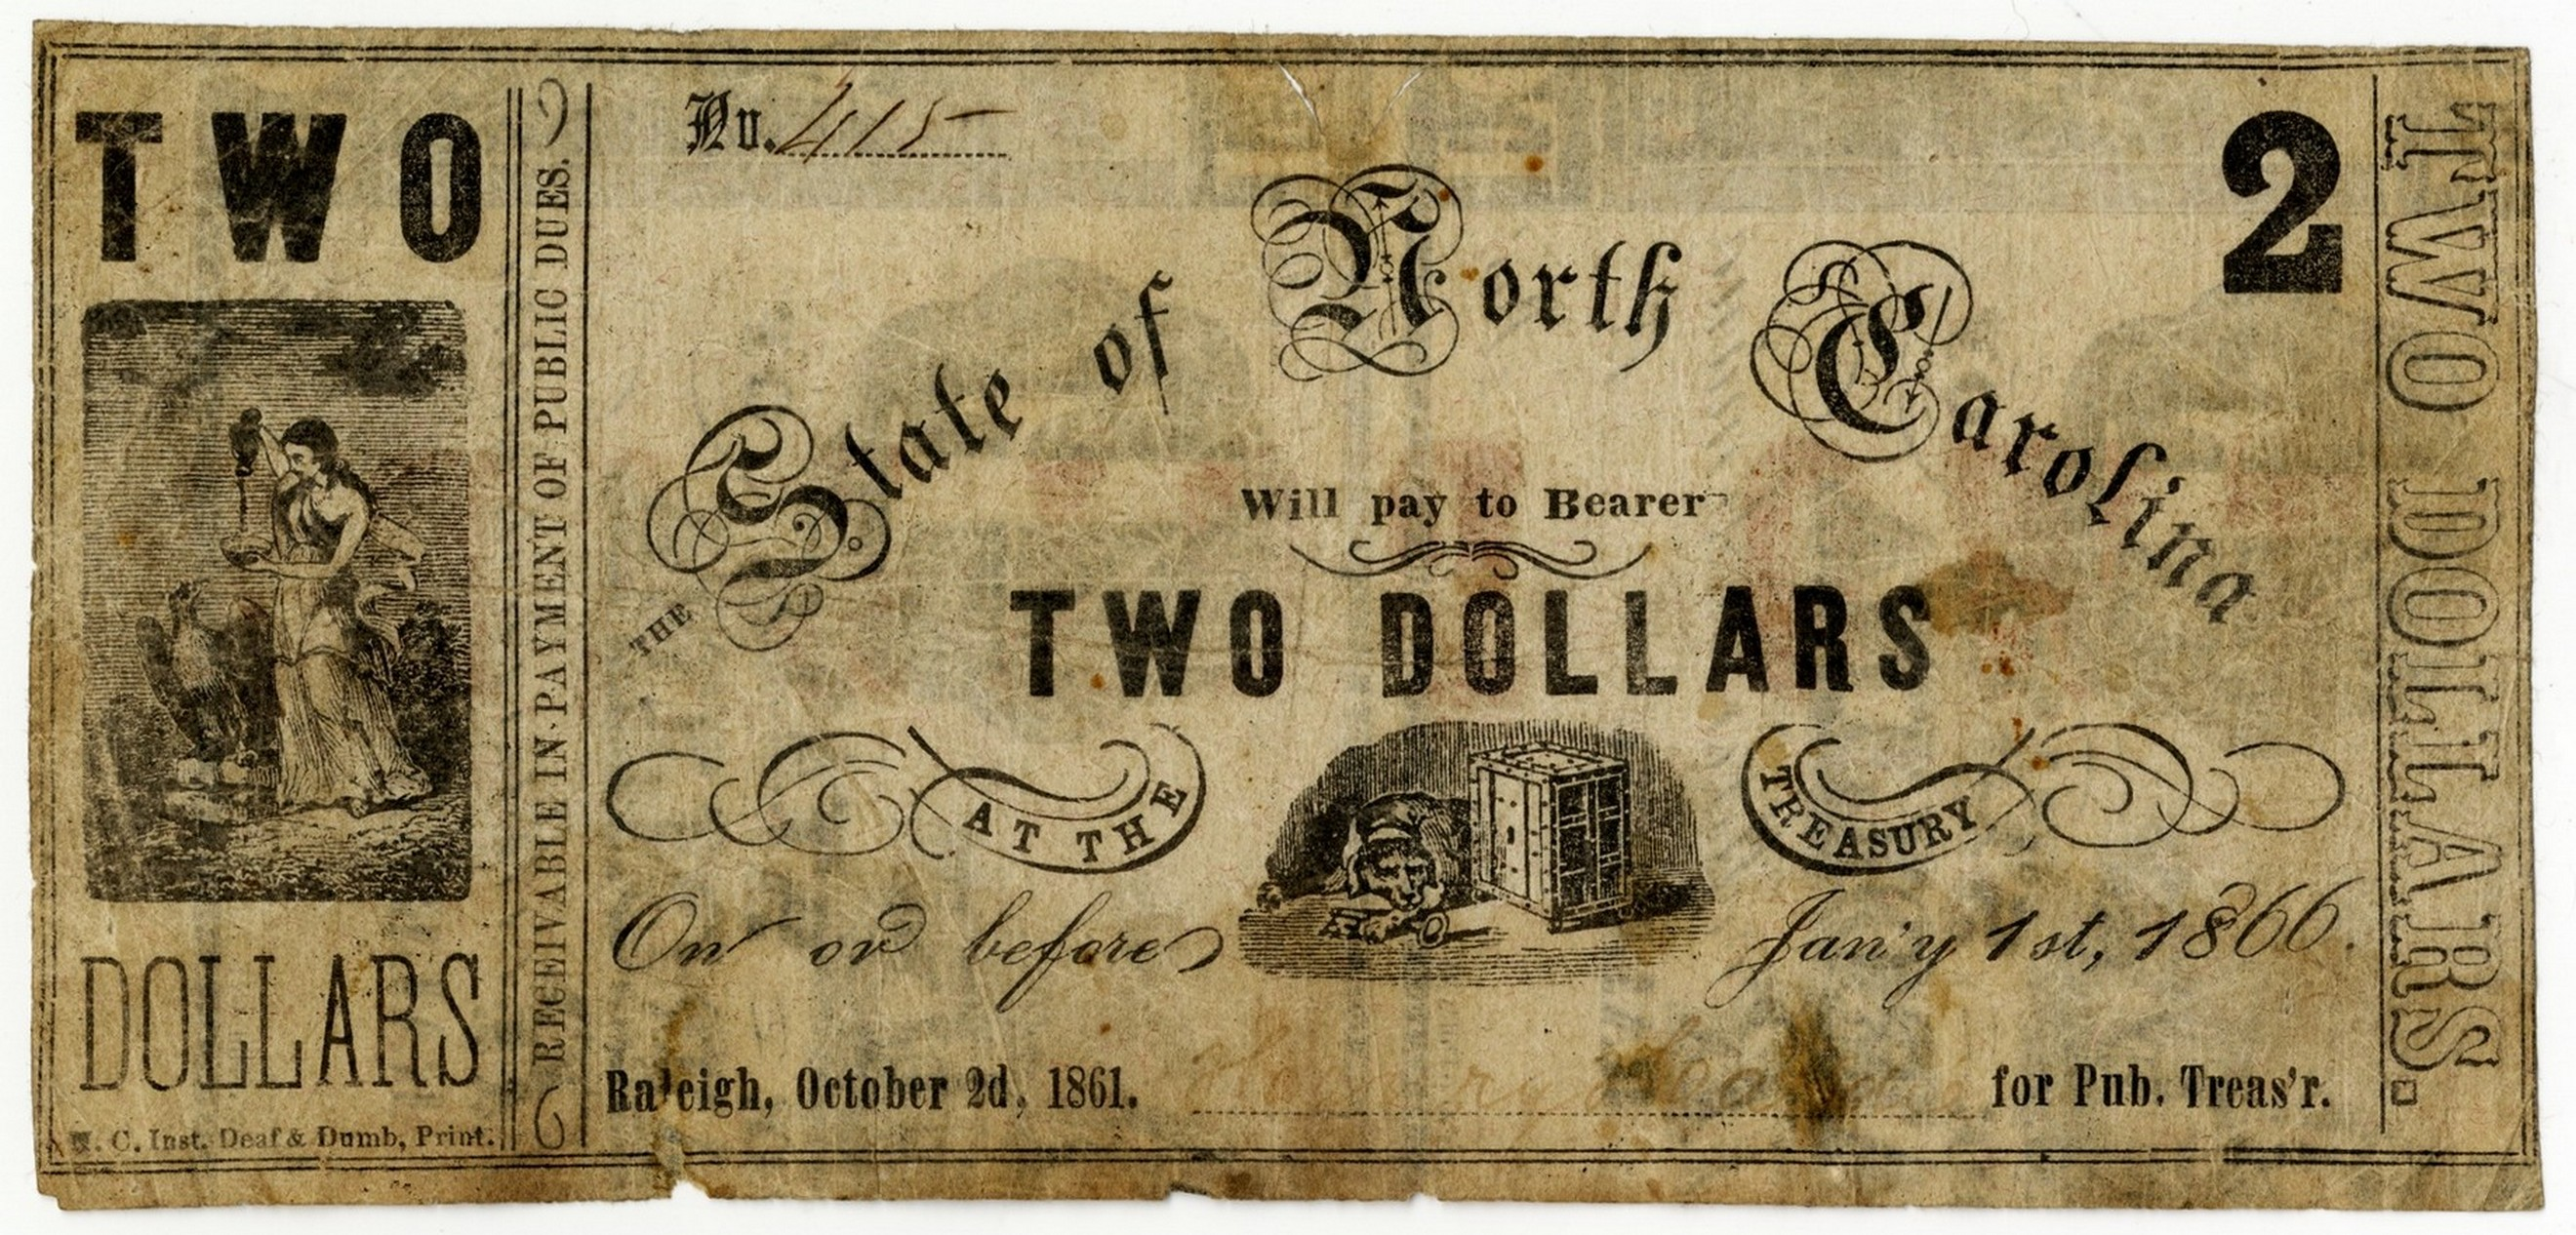 North Carolina Civil War treasury note $2 printed by the N.C. Inst. for the Deaf & Dumb